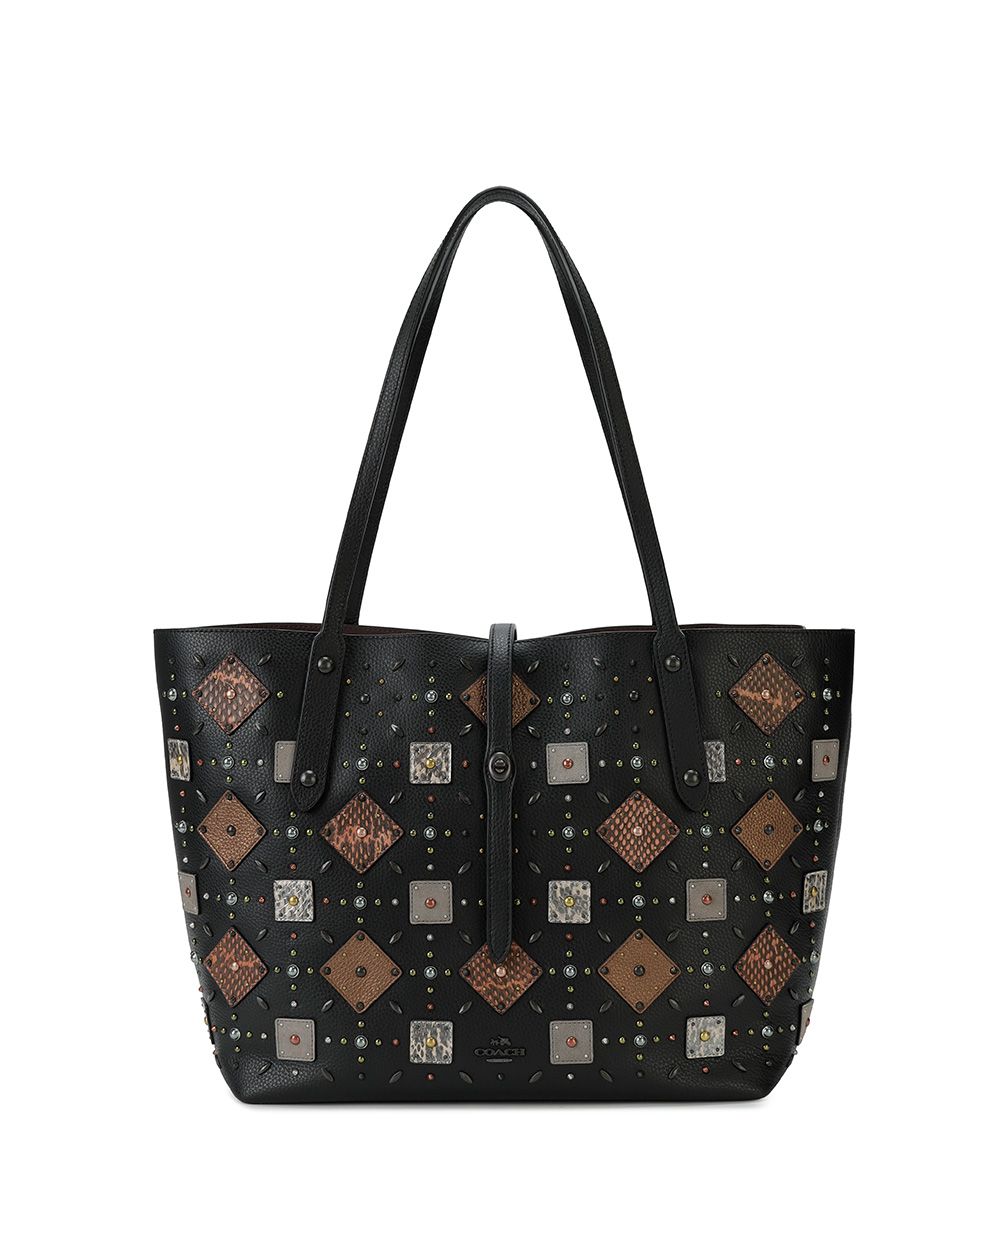 MARKET TOTE Leather Tote Bag